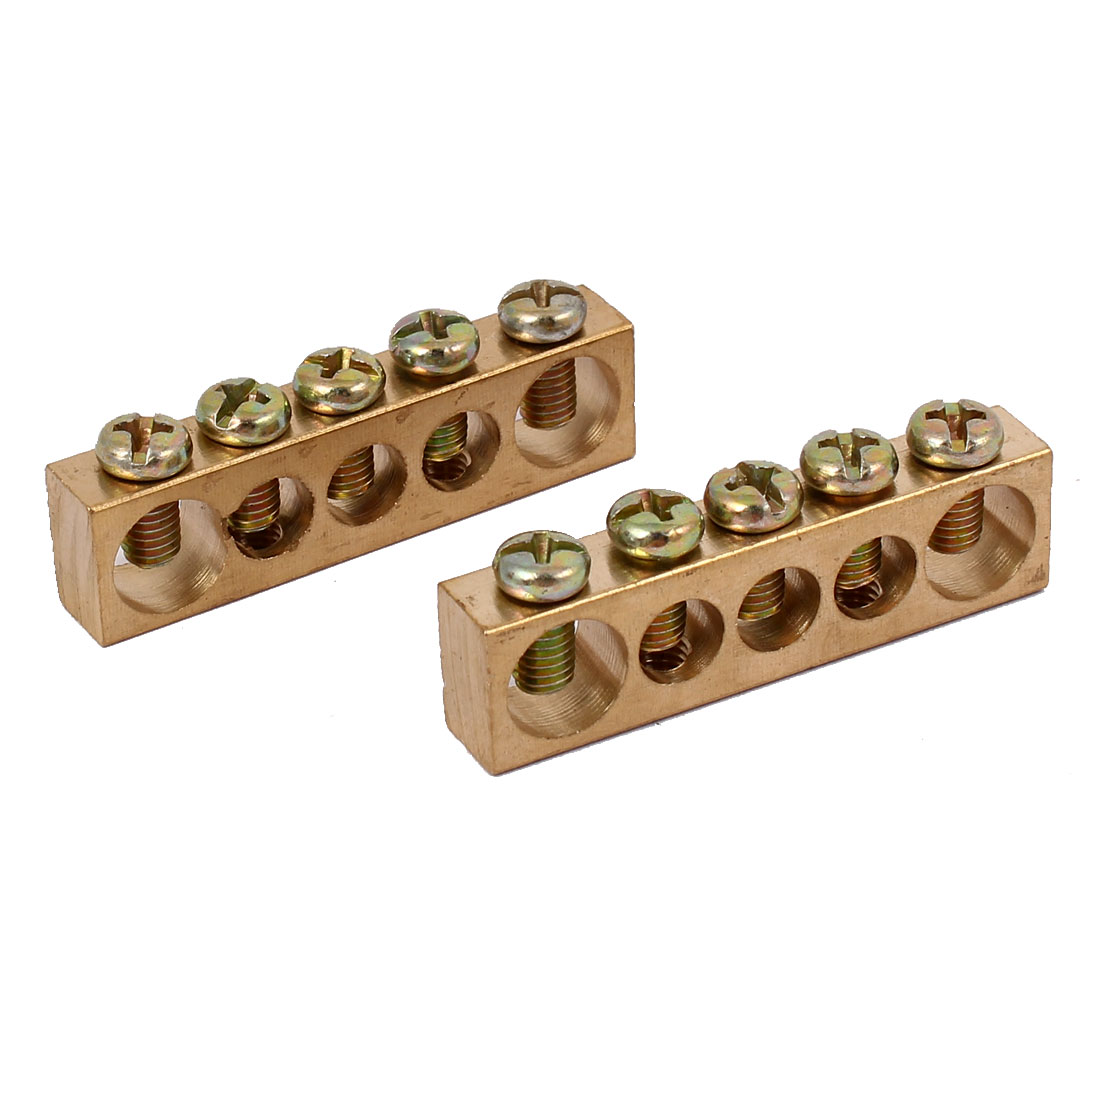 5 Positions Electric Wire Screw Terminal Ground Copper Neutral Bar 2pcs